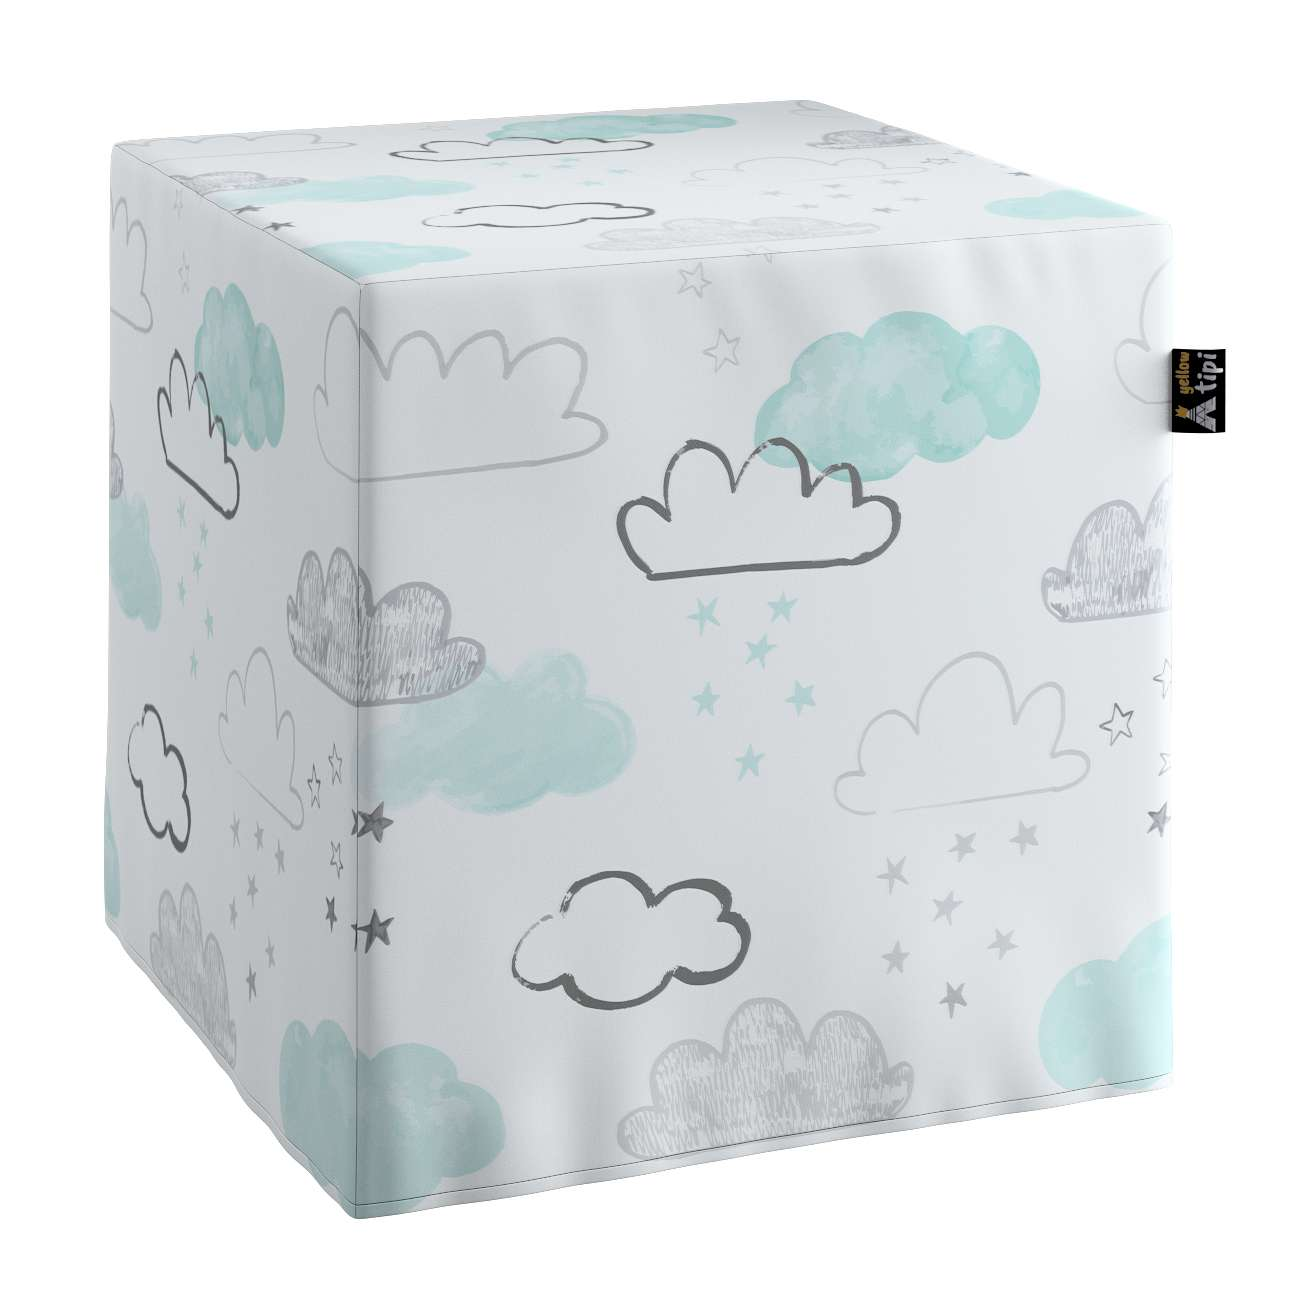 Nano cube pouf in collection Magic Collection, fabric: 500-14